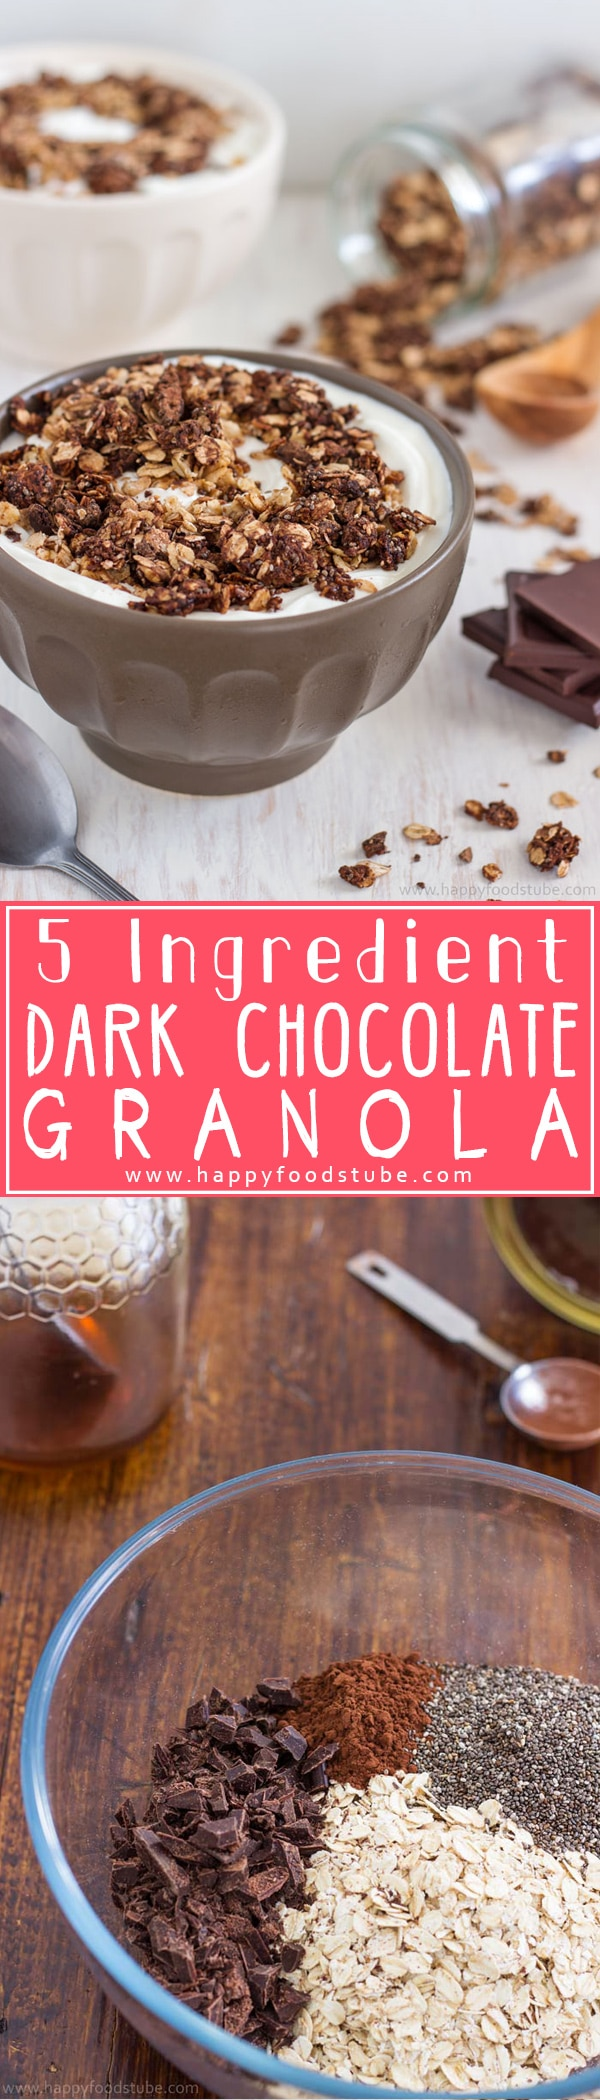 5 Ingredient Dark Chocolate Granola Recipe - HappyFoods Tube